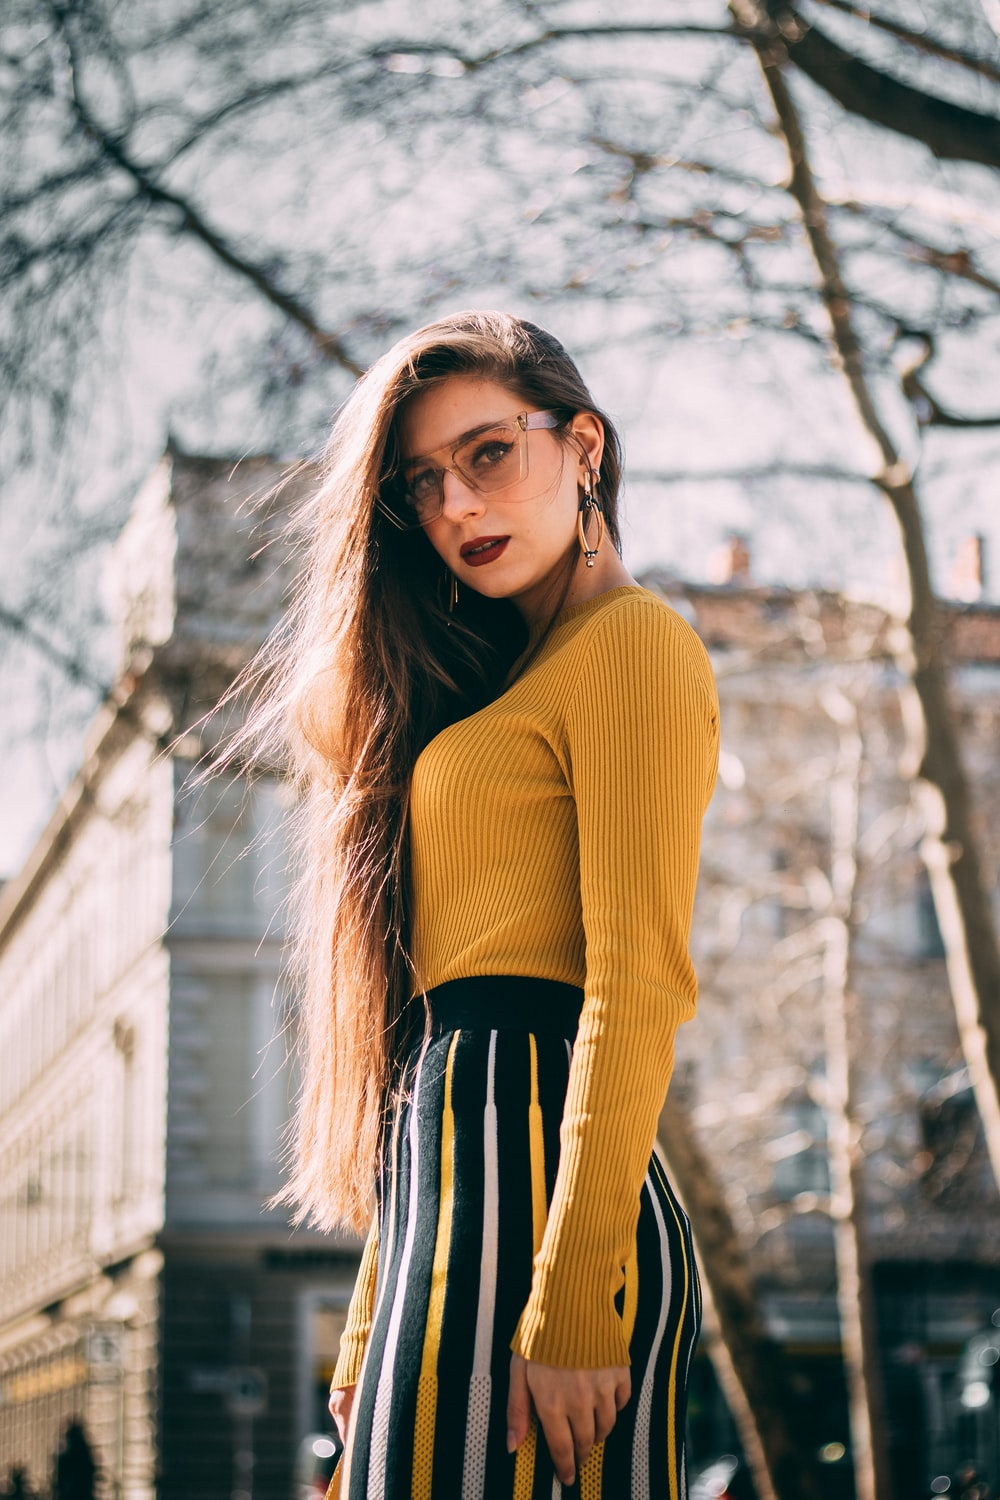 woman in yellow long-sleeve shirt near concrete building during daytime